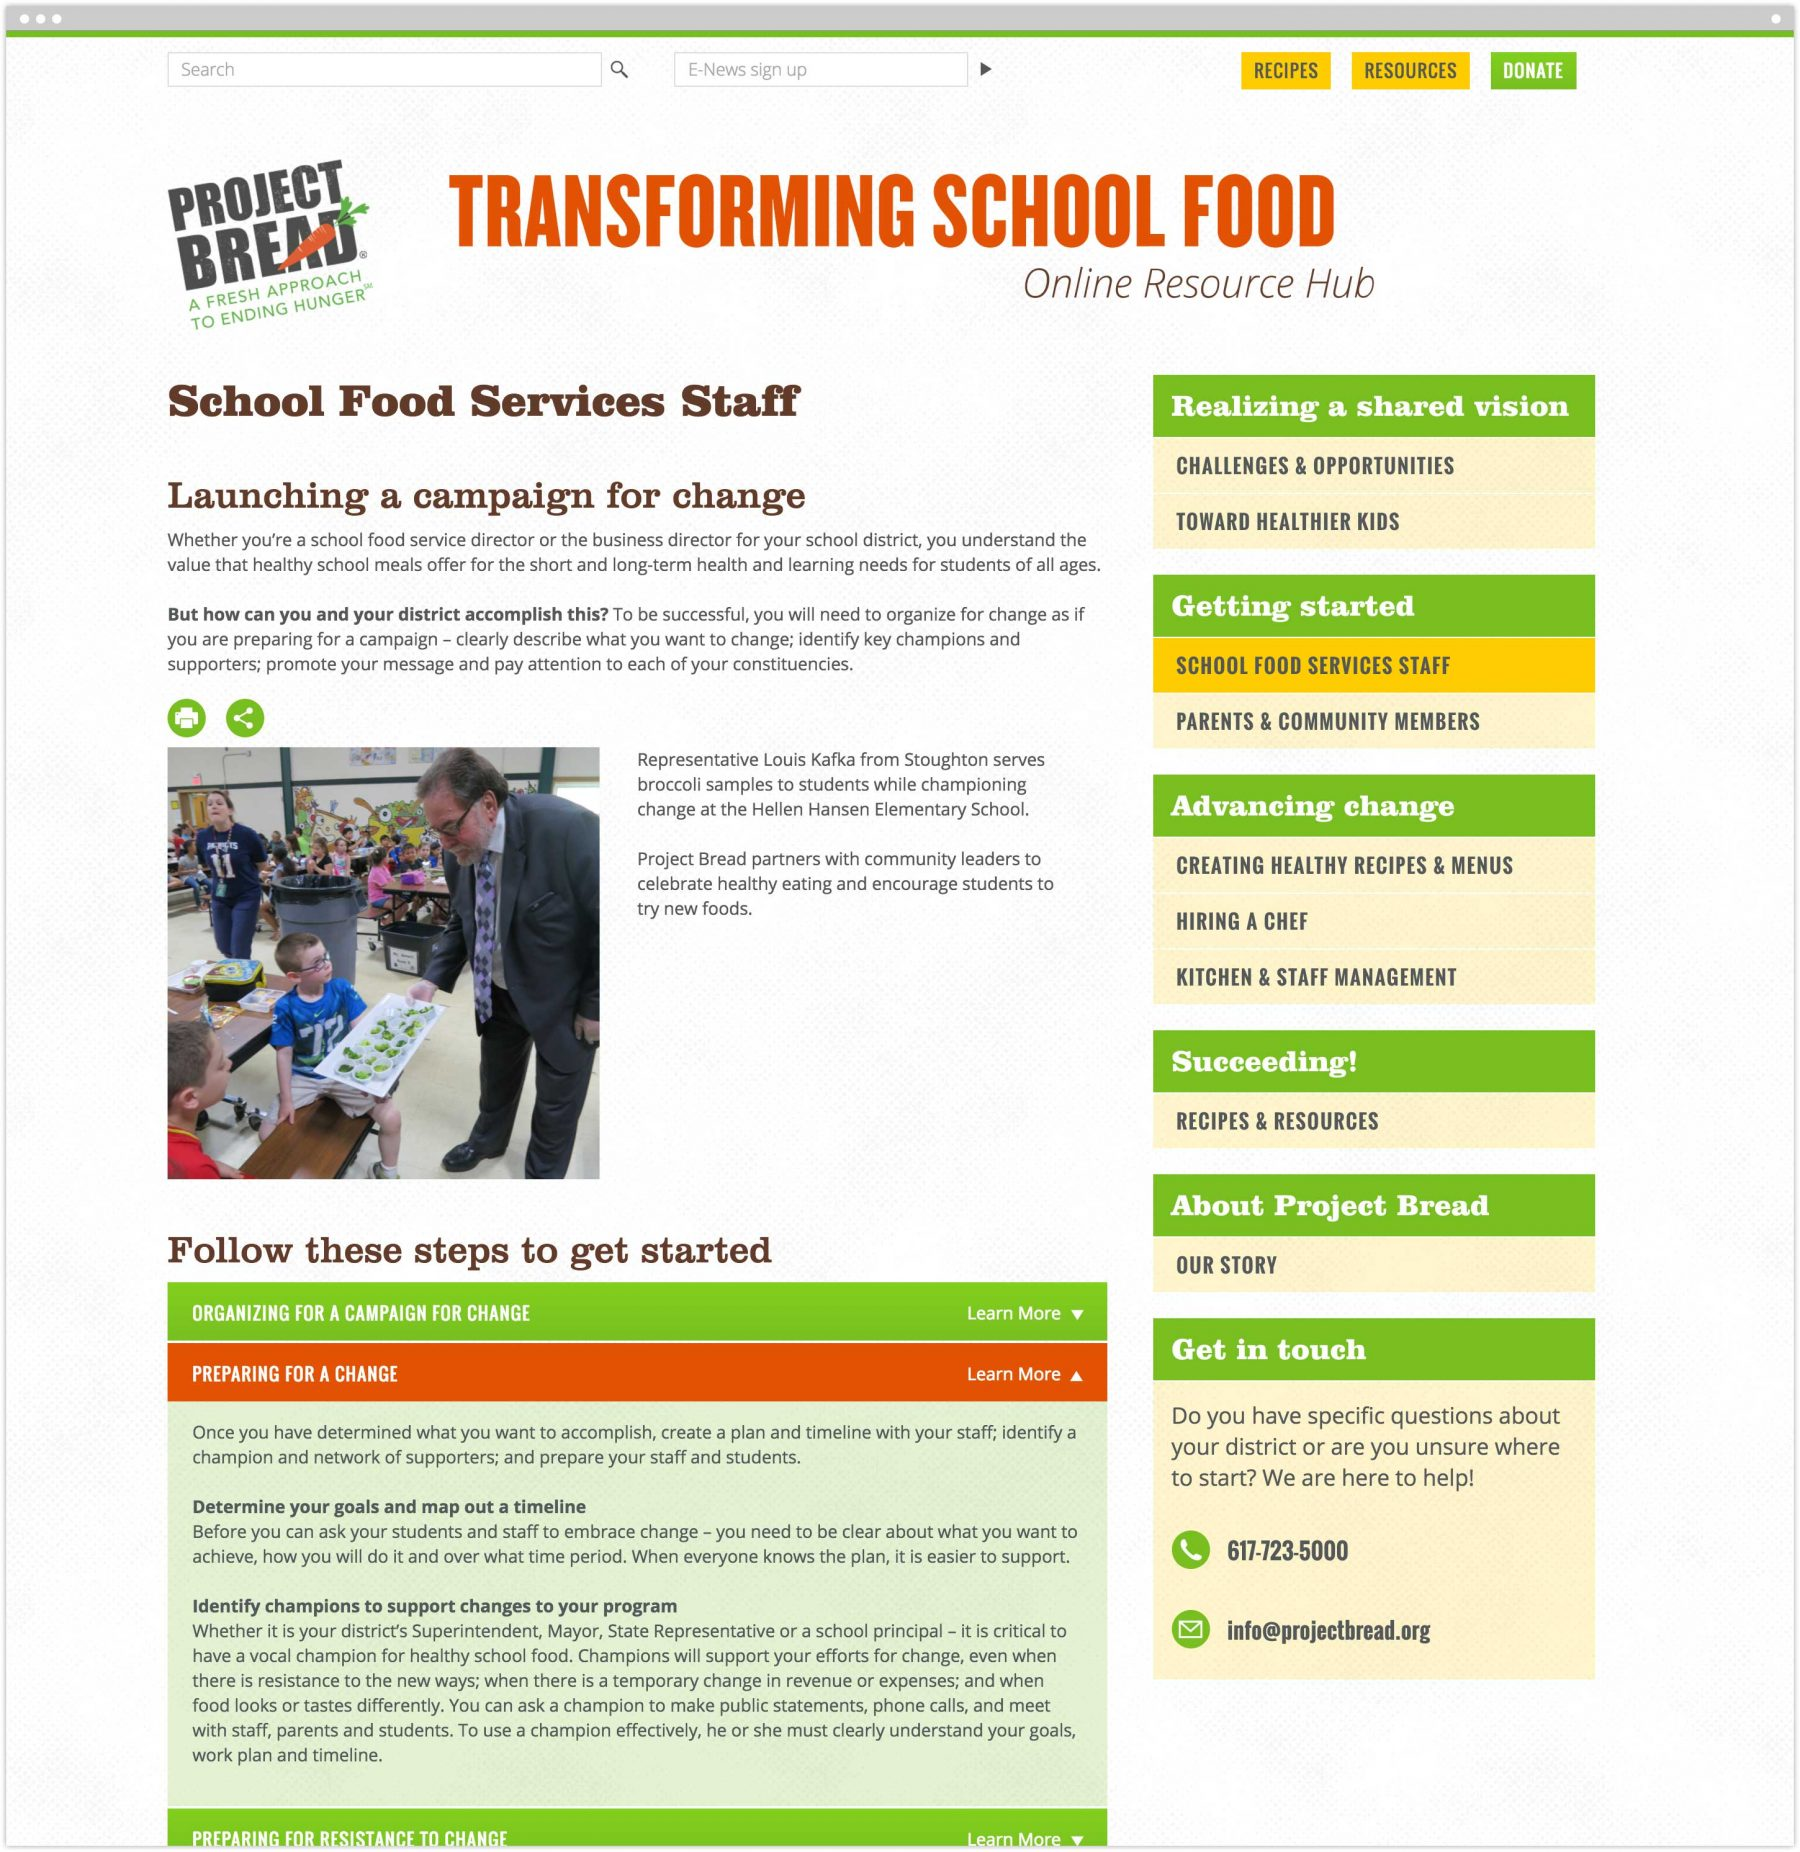 School Food Services Staff interior page